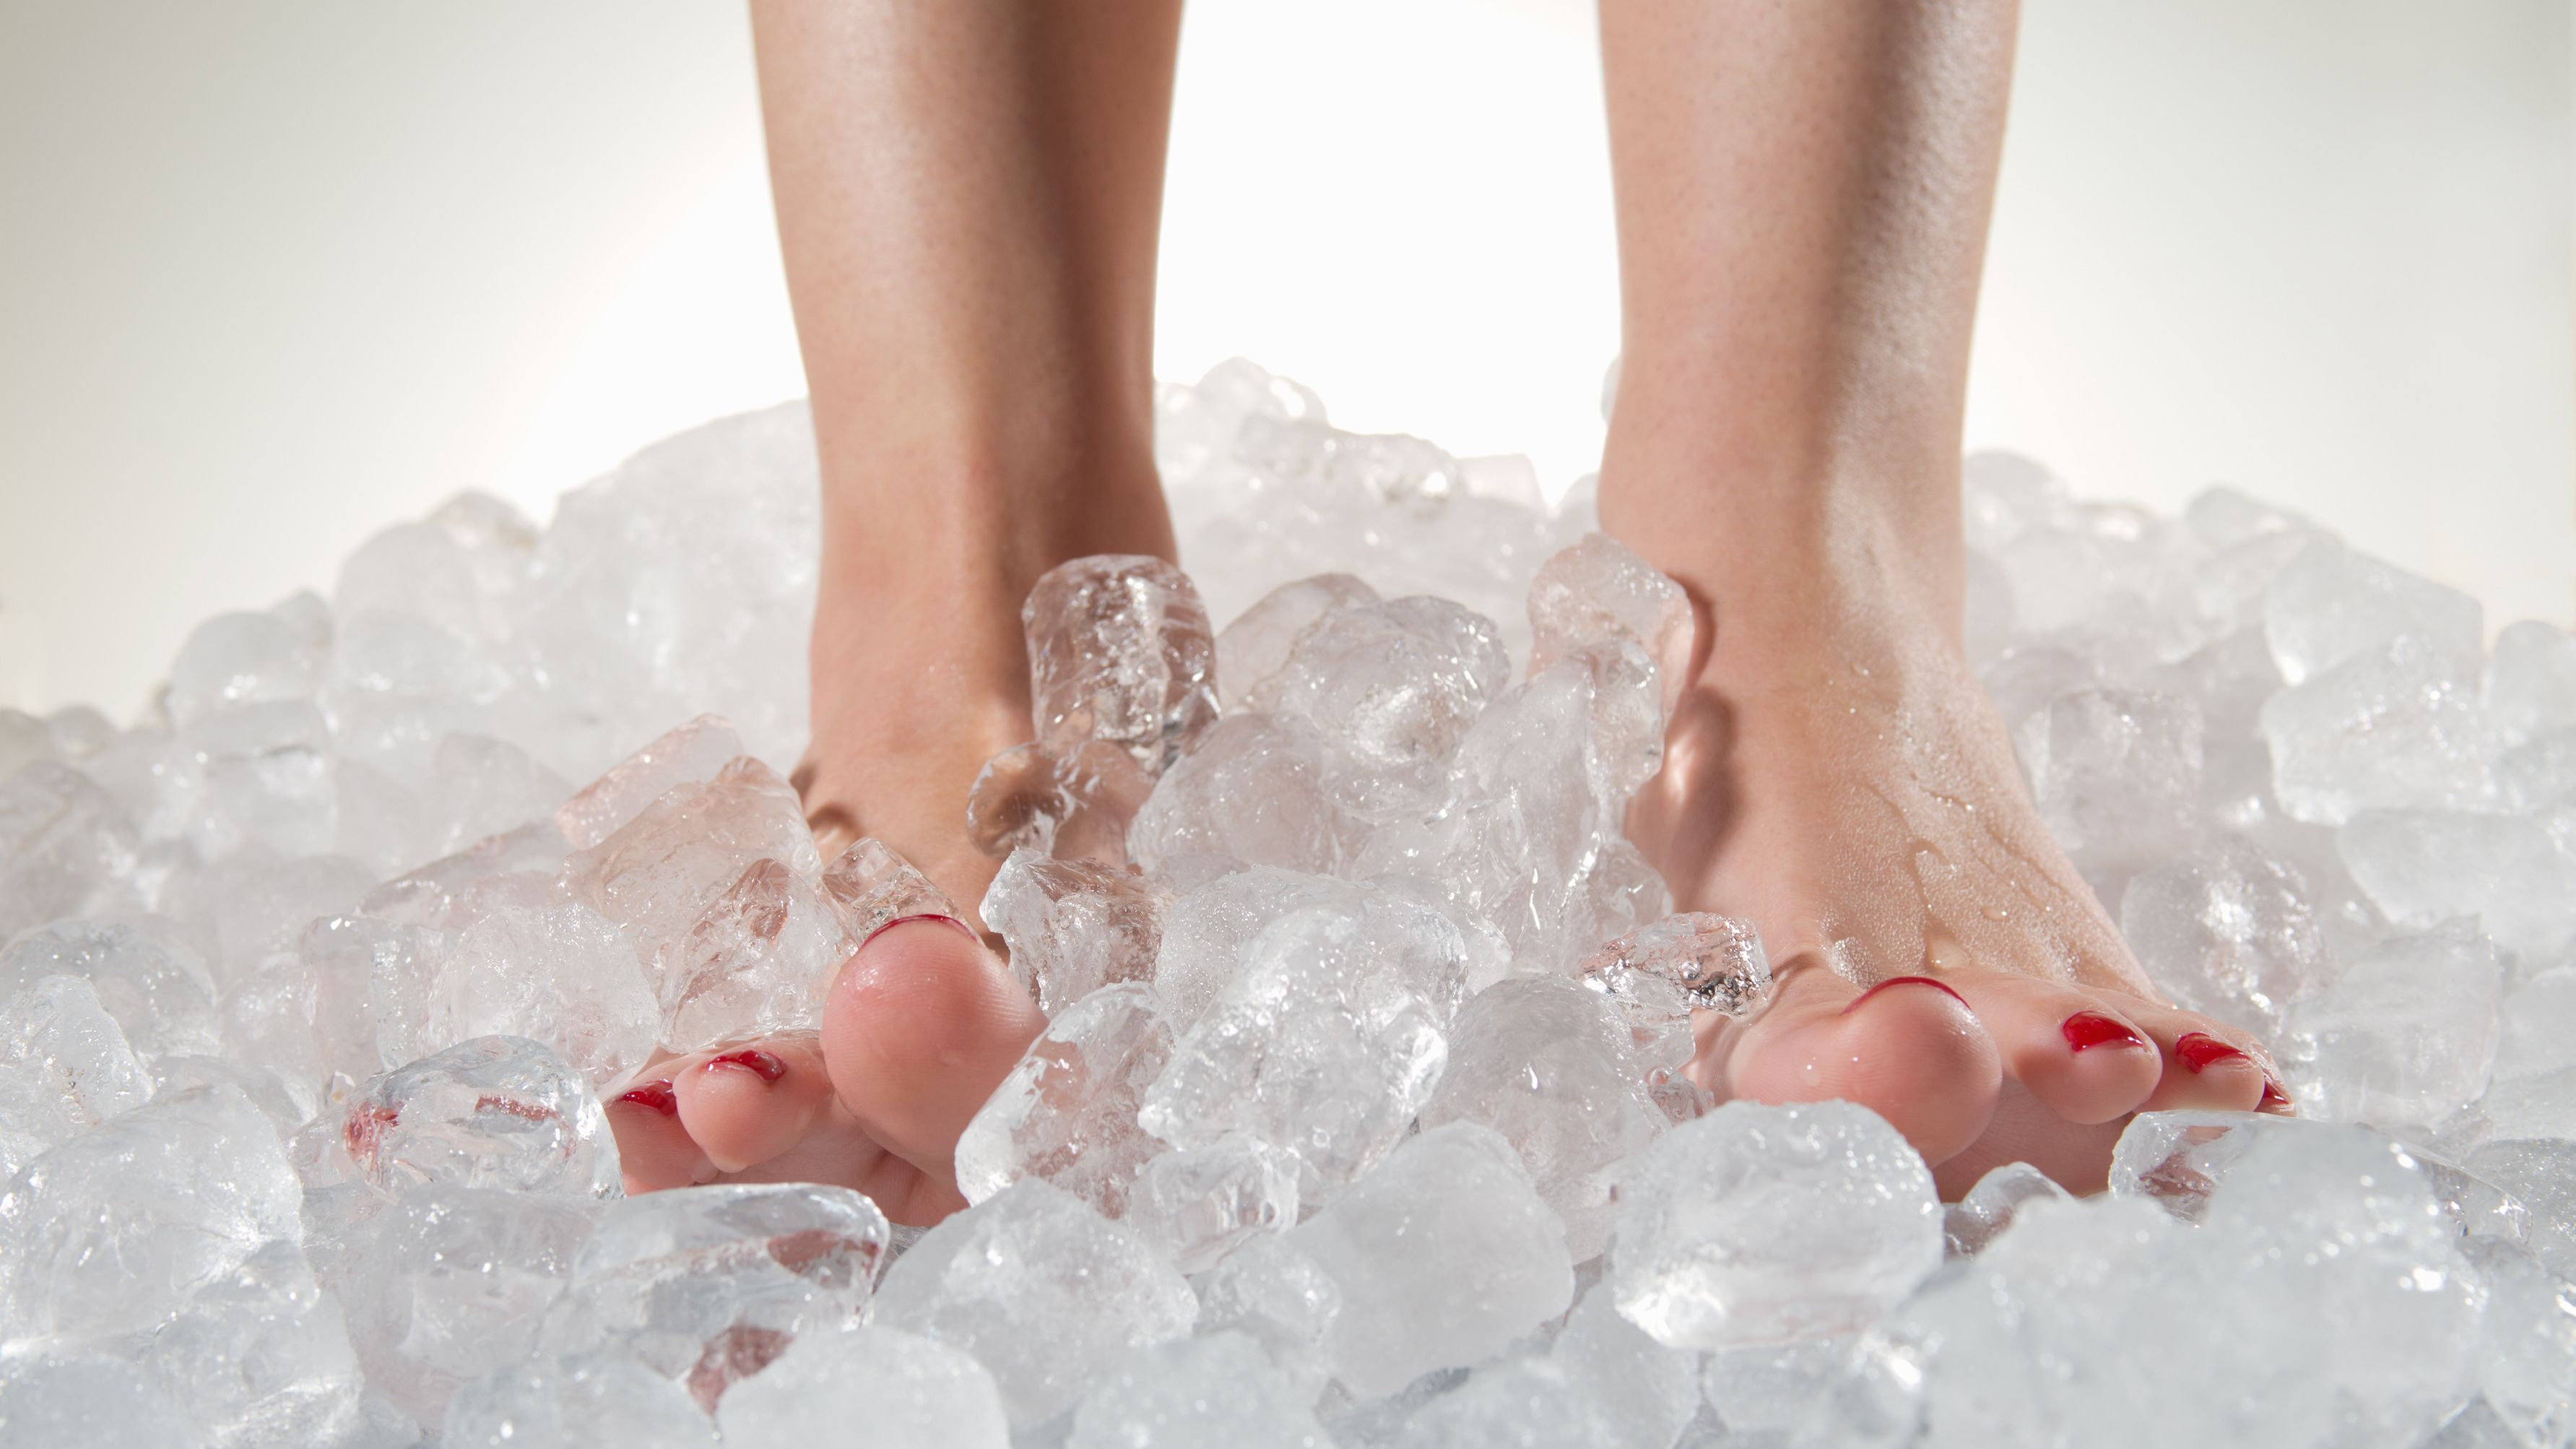 How To Avoid Hot Feet When Walking Or Running